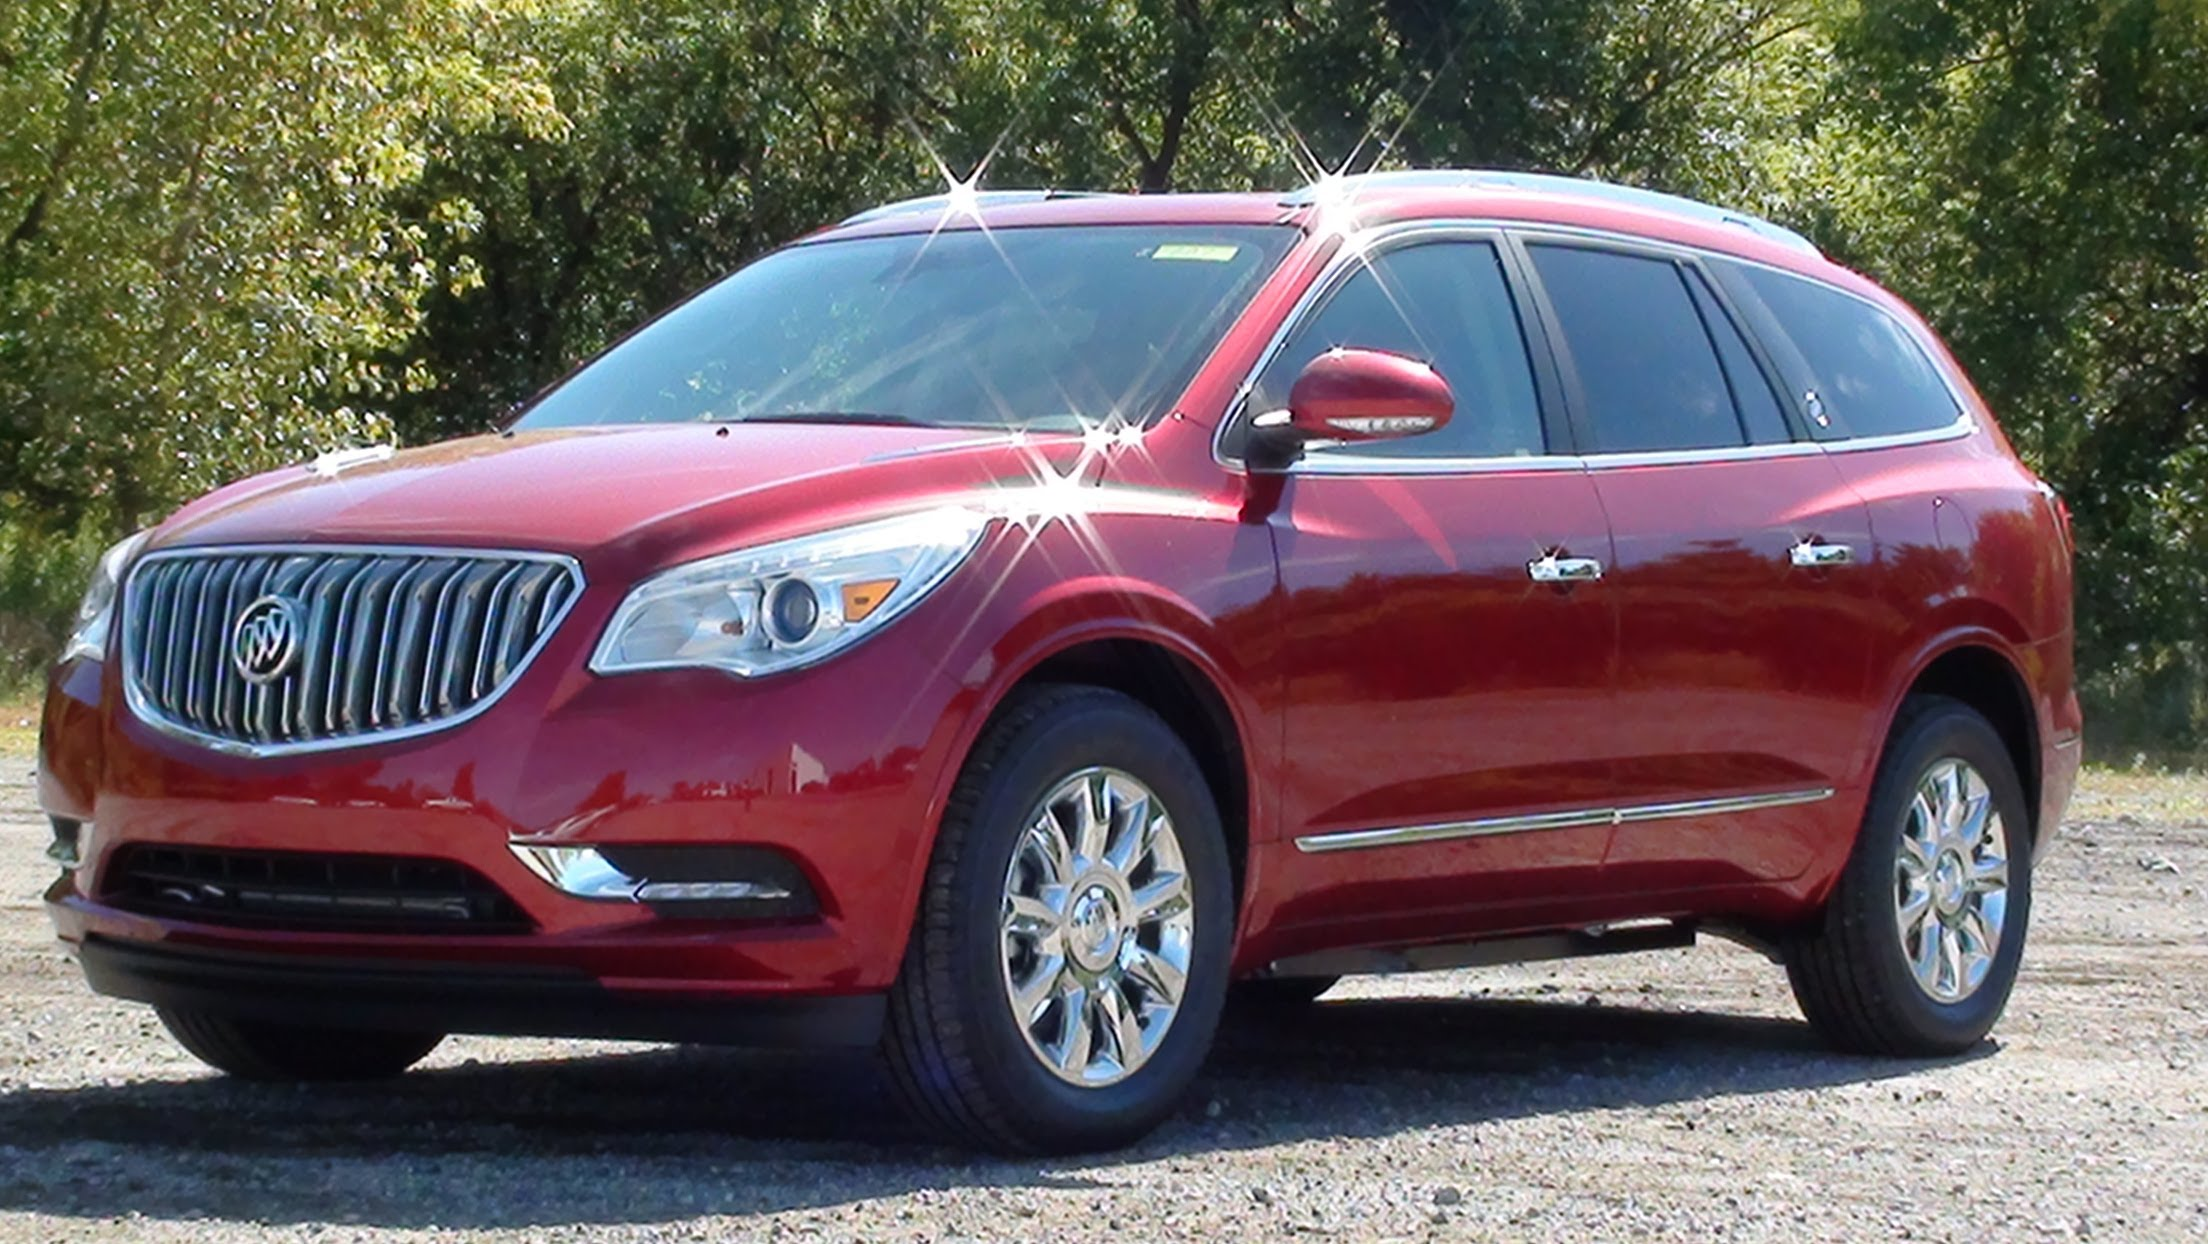 2015 buick enclave premium awd car news. Black Bedroom Furniture Sets. Home Design Ideas